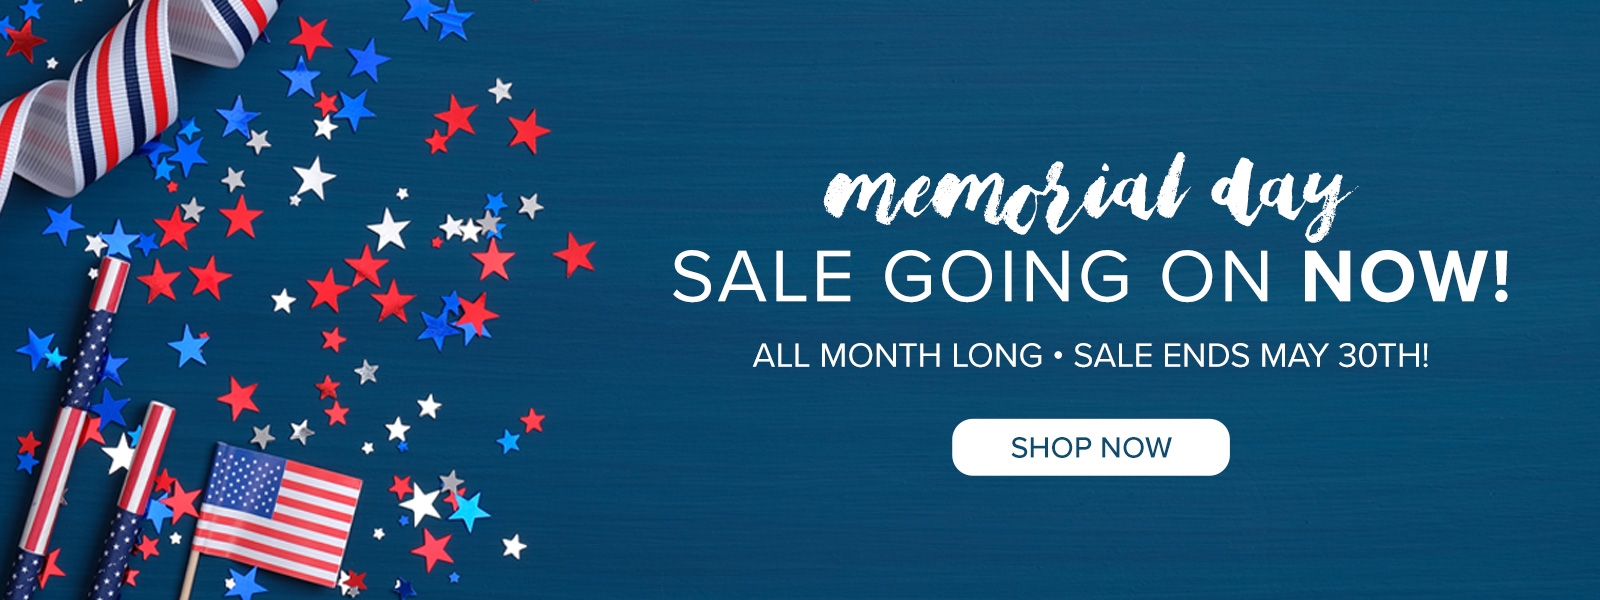 Memorial Day Sale Going On Now